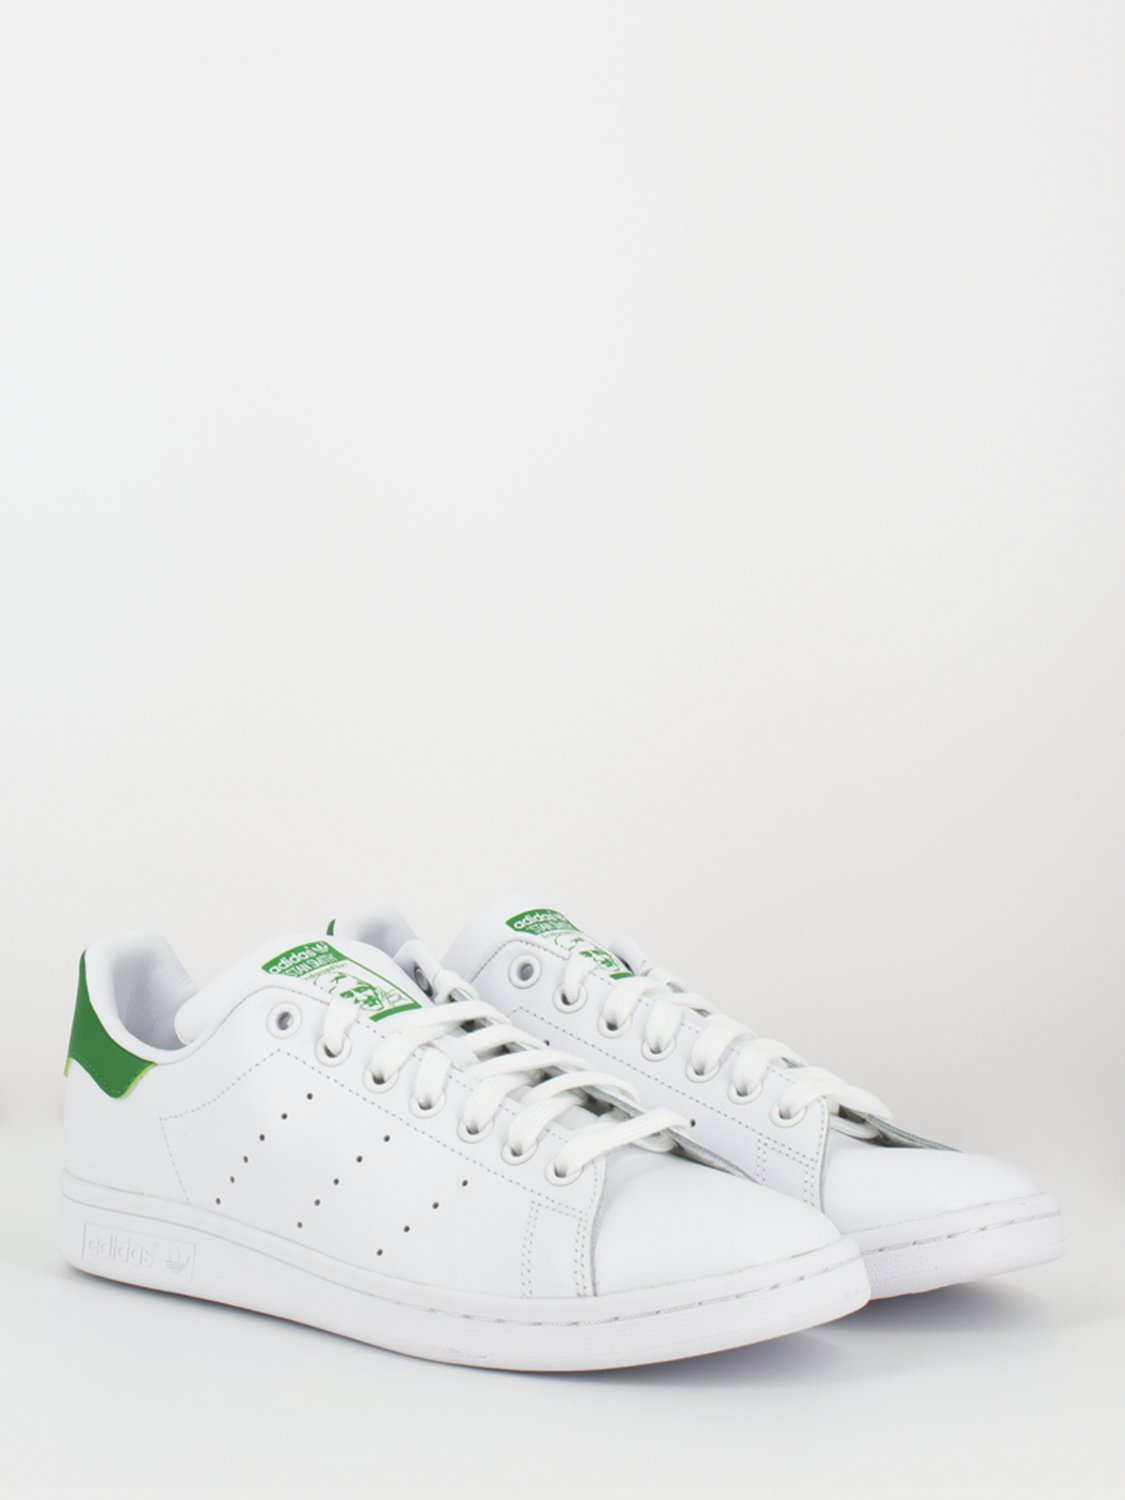 adidas stan smith bianco verde